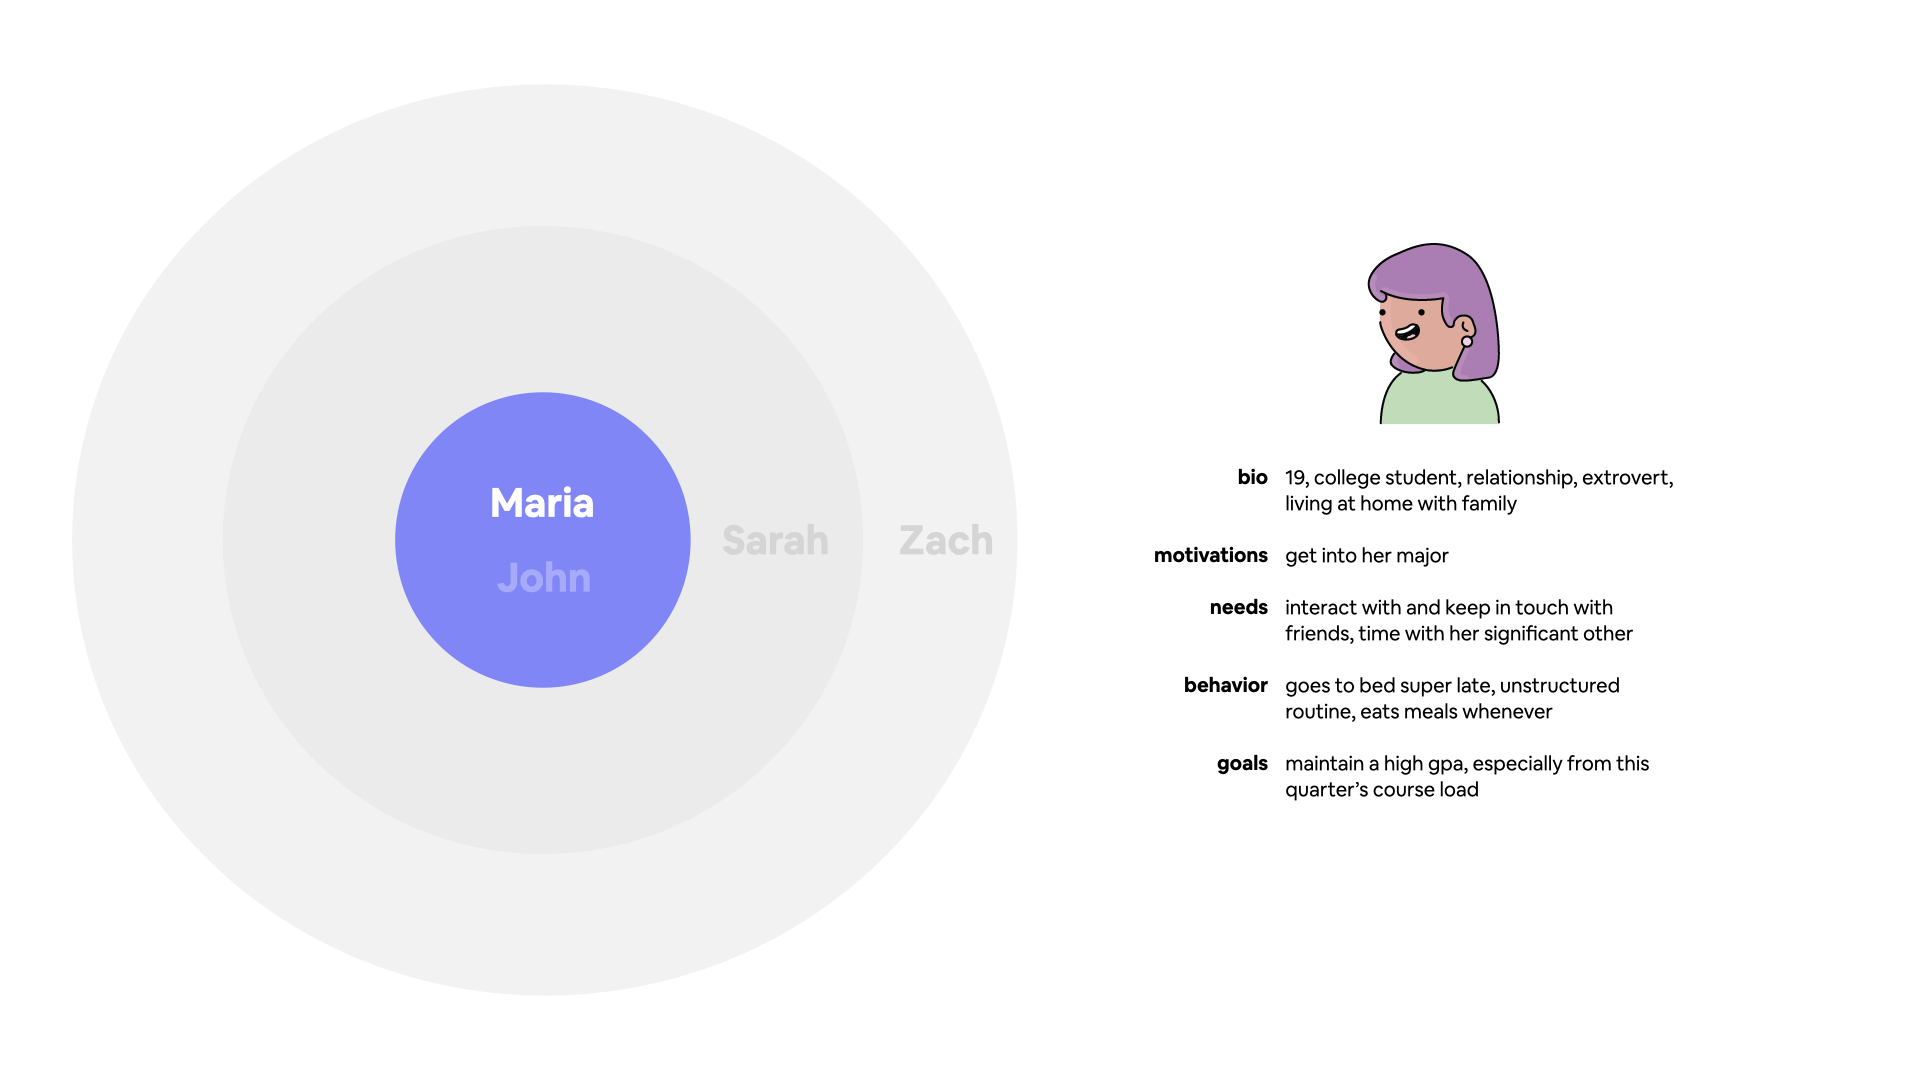 Primary persona graph for Maria, a 19 year old college student.